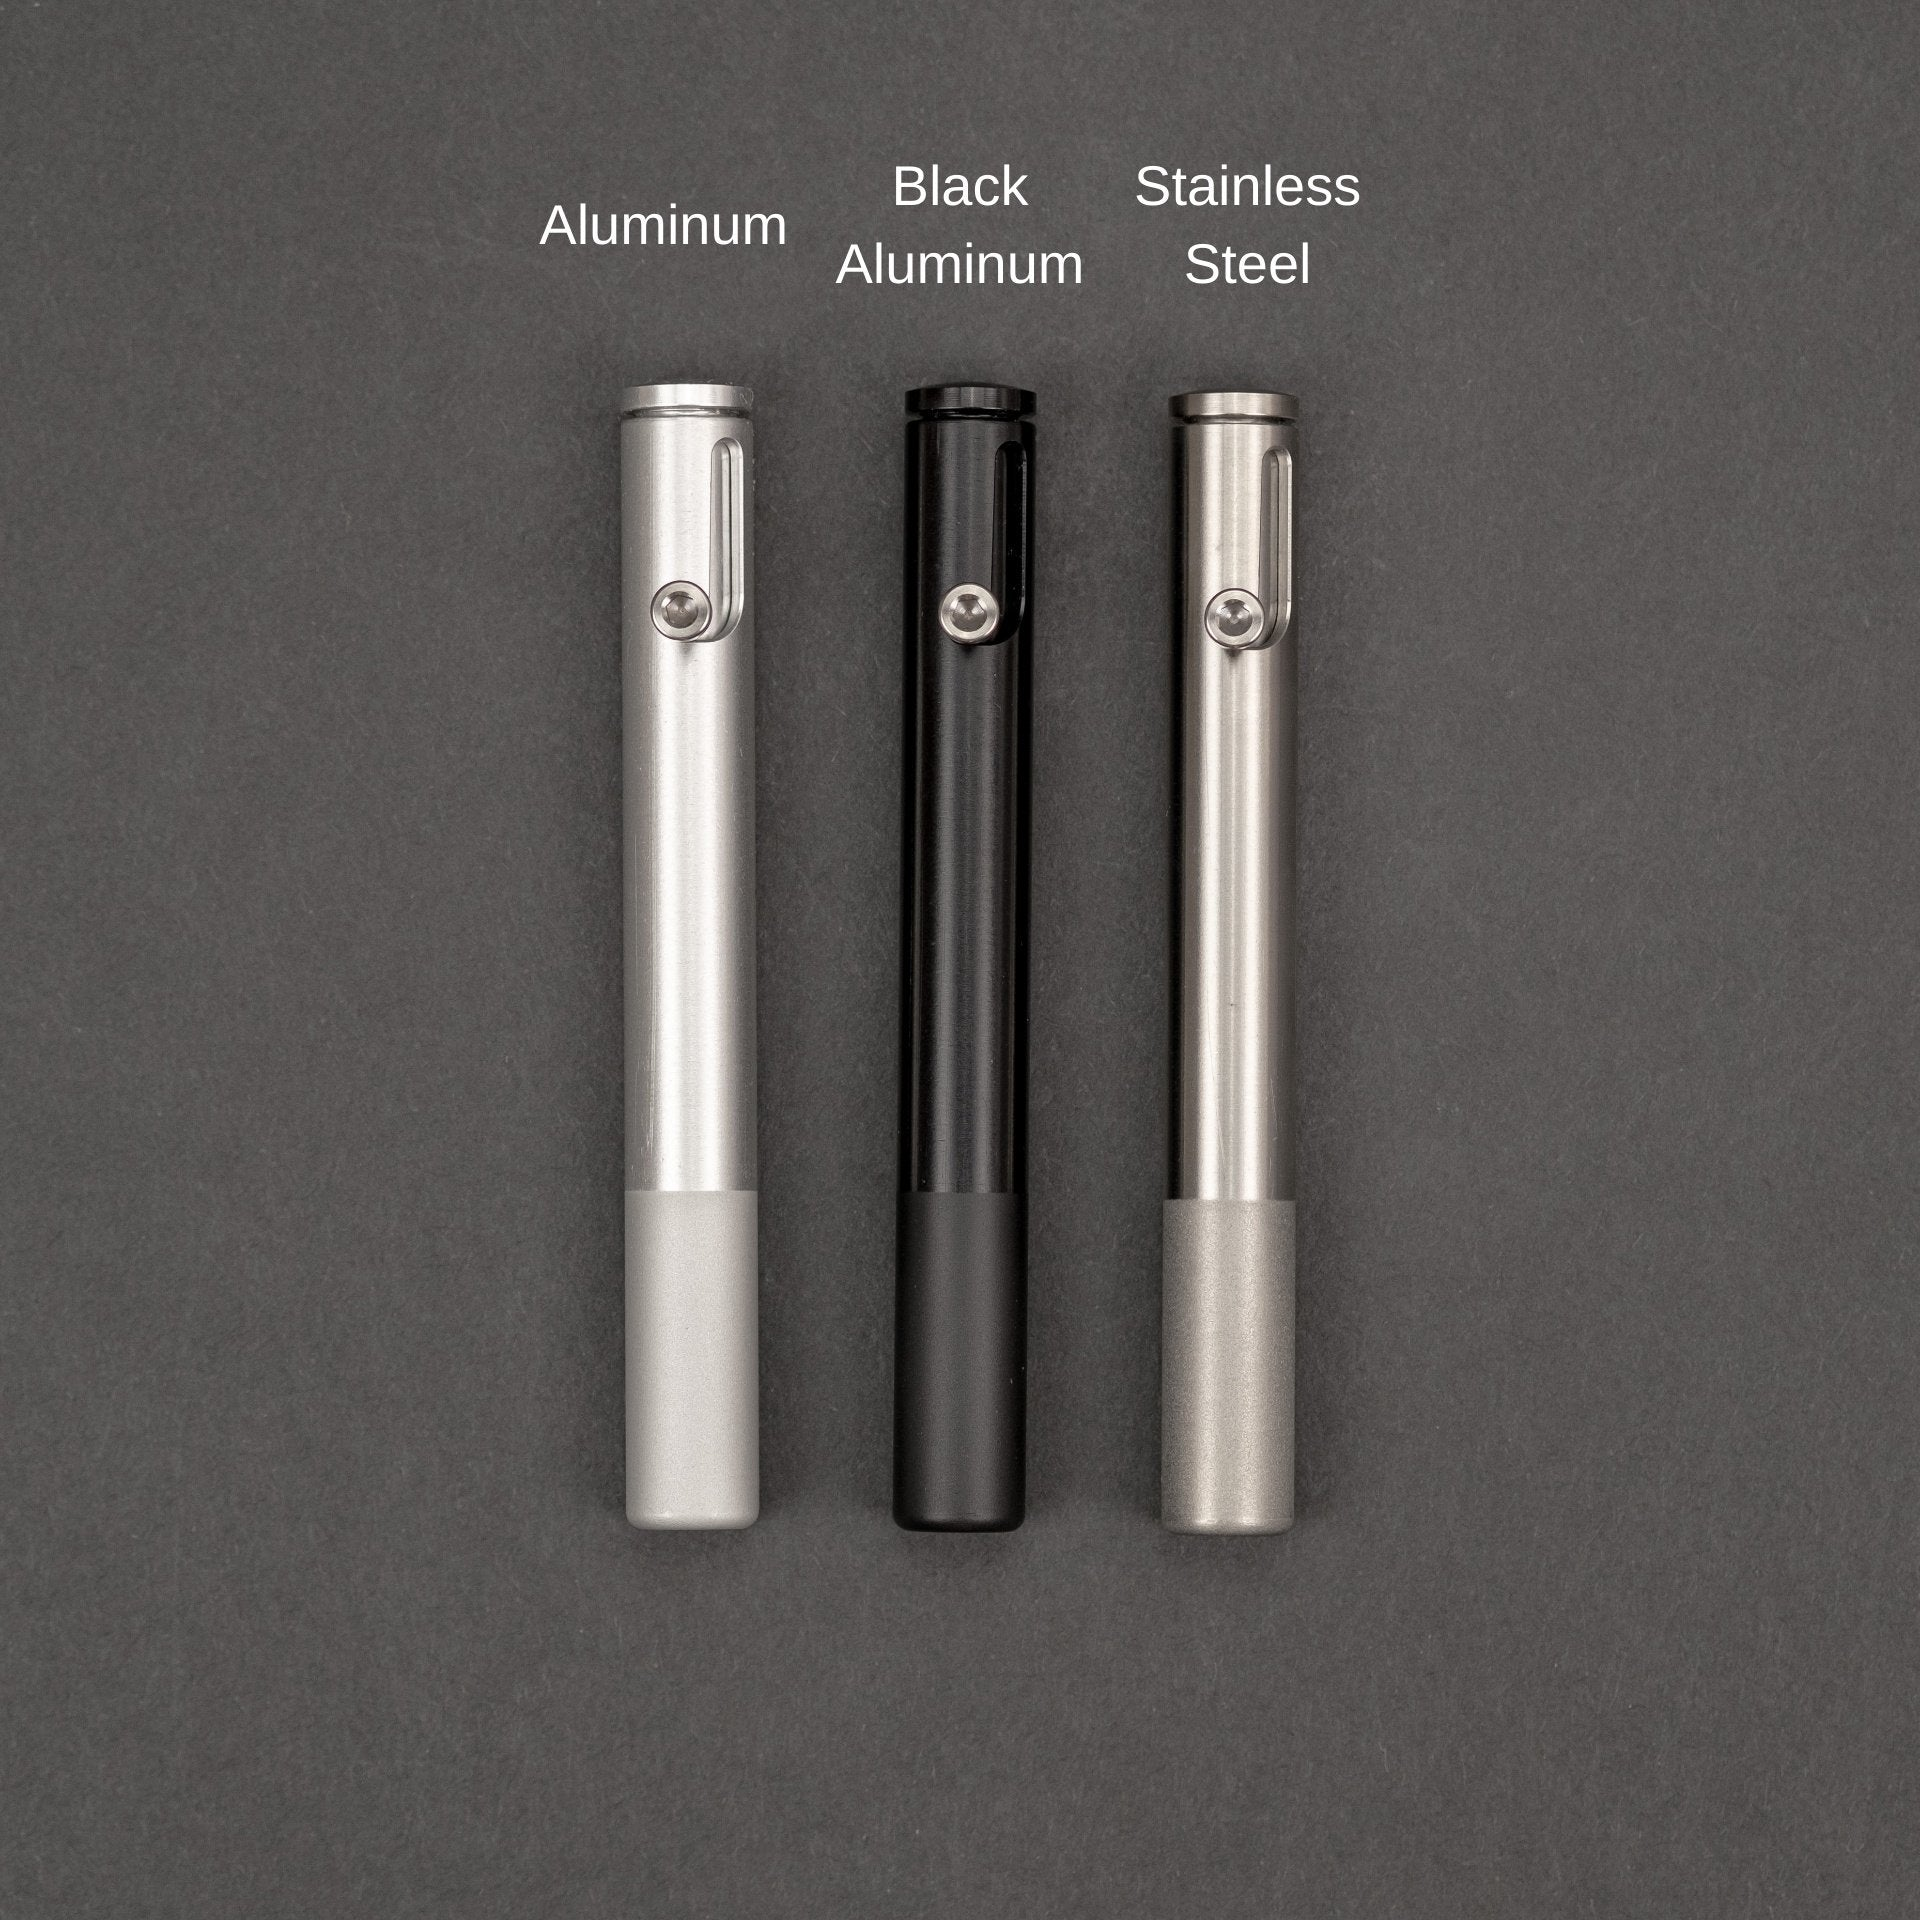 The Humboldt Pipe - Aluminum Black